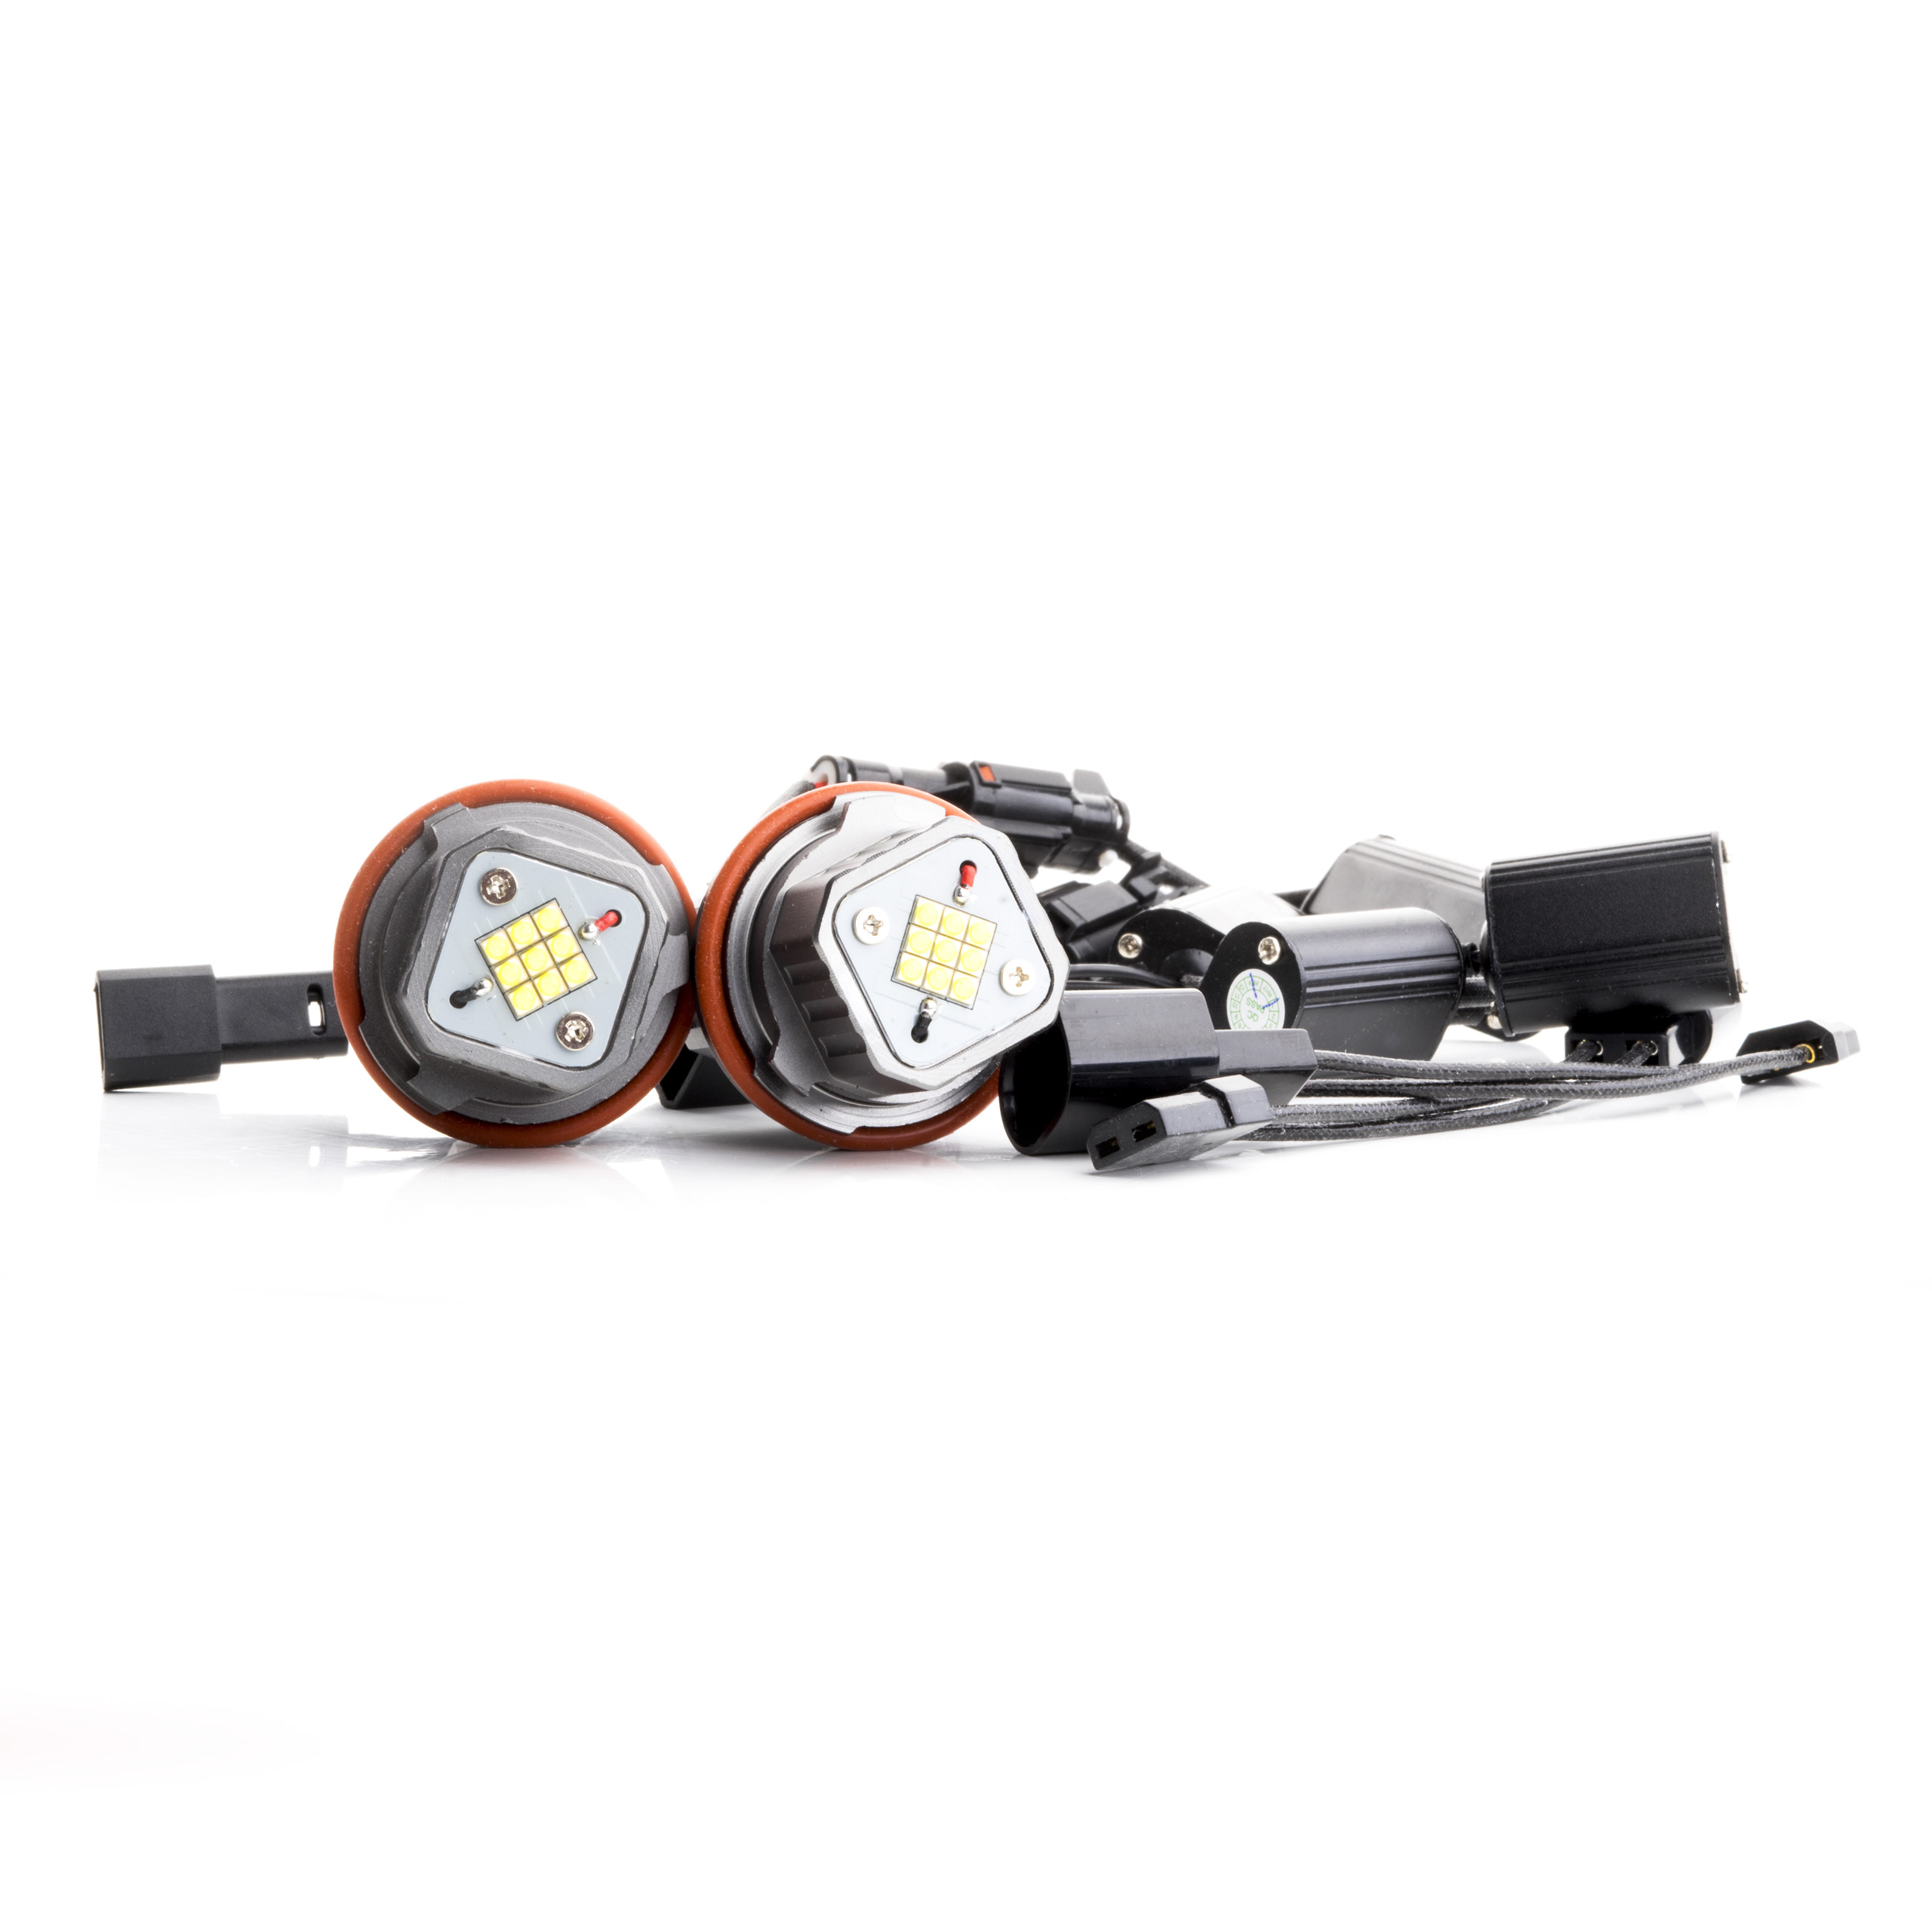 LED Markery 2 x 80W (OSRAM) do kroužků BMW 6 E63/E64 (2003-09/2007)